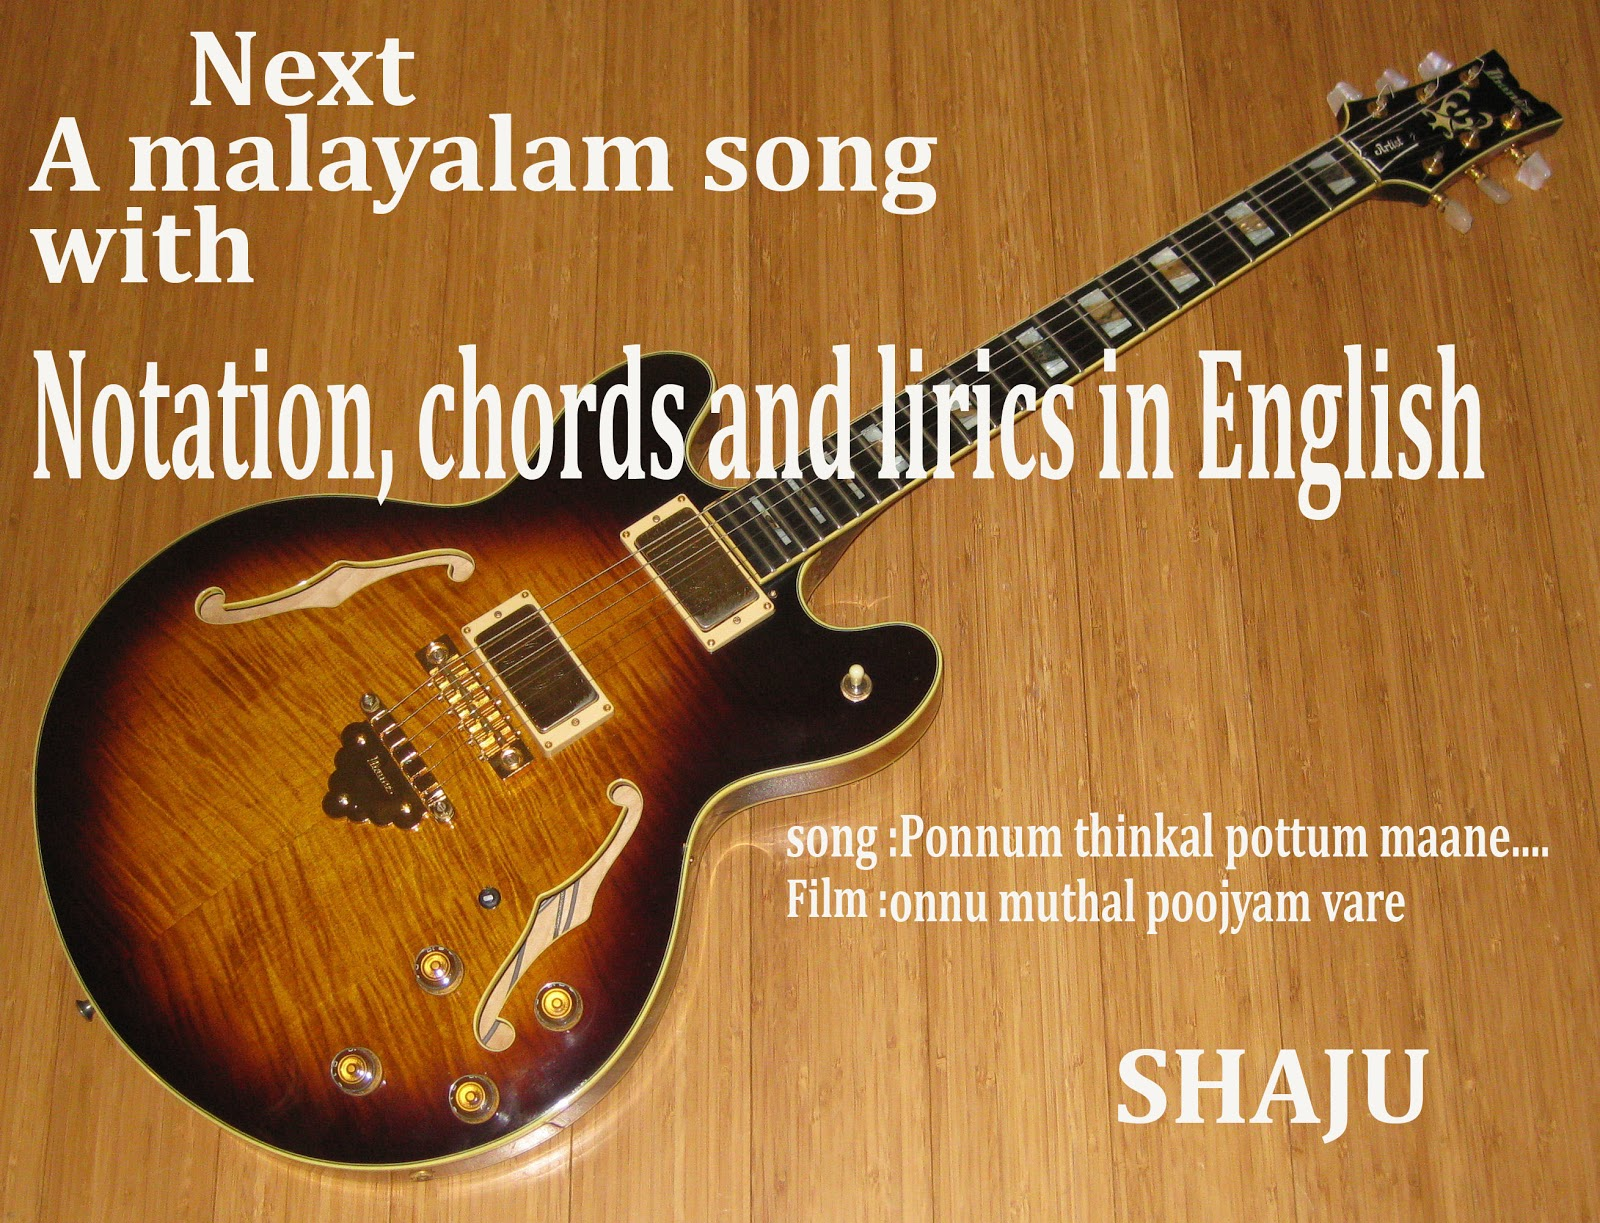 Shajus Guitar Lessons A Malayalam Song With Notation Chords And